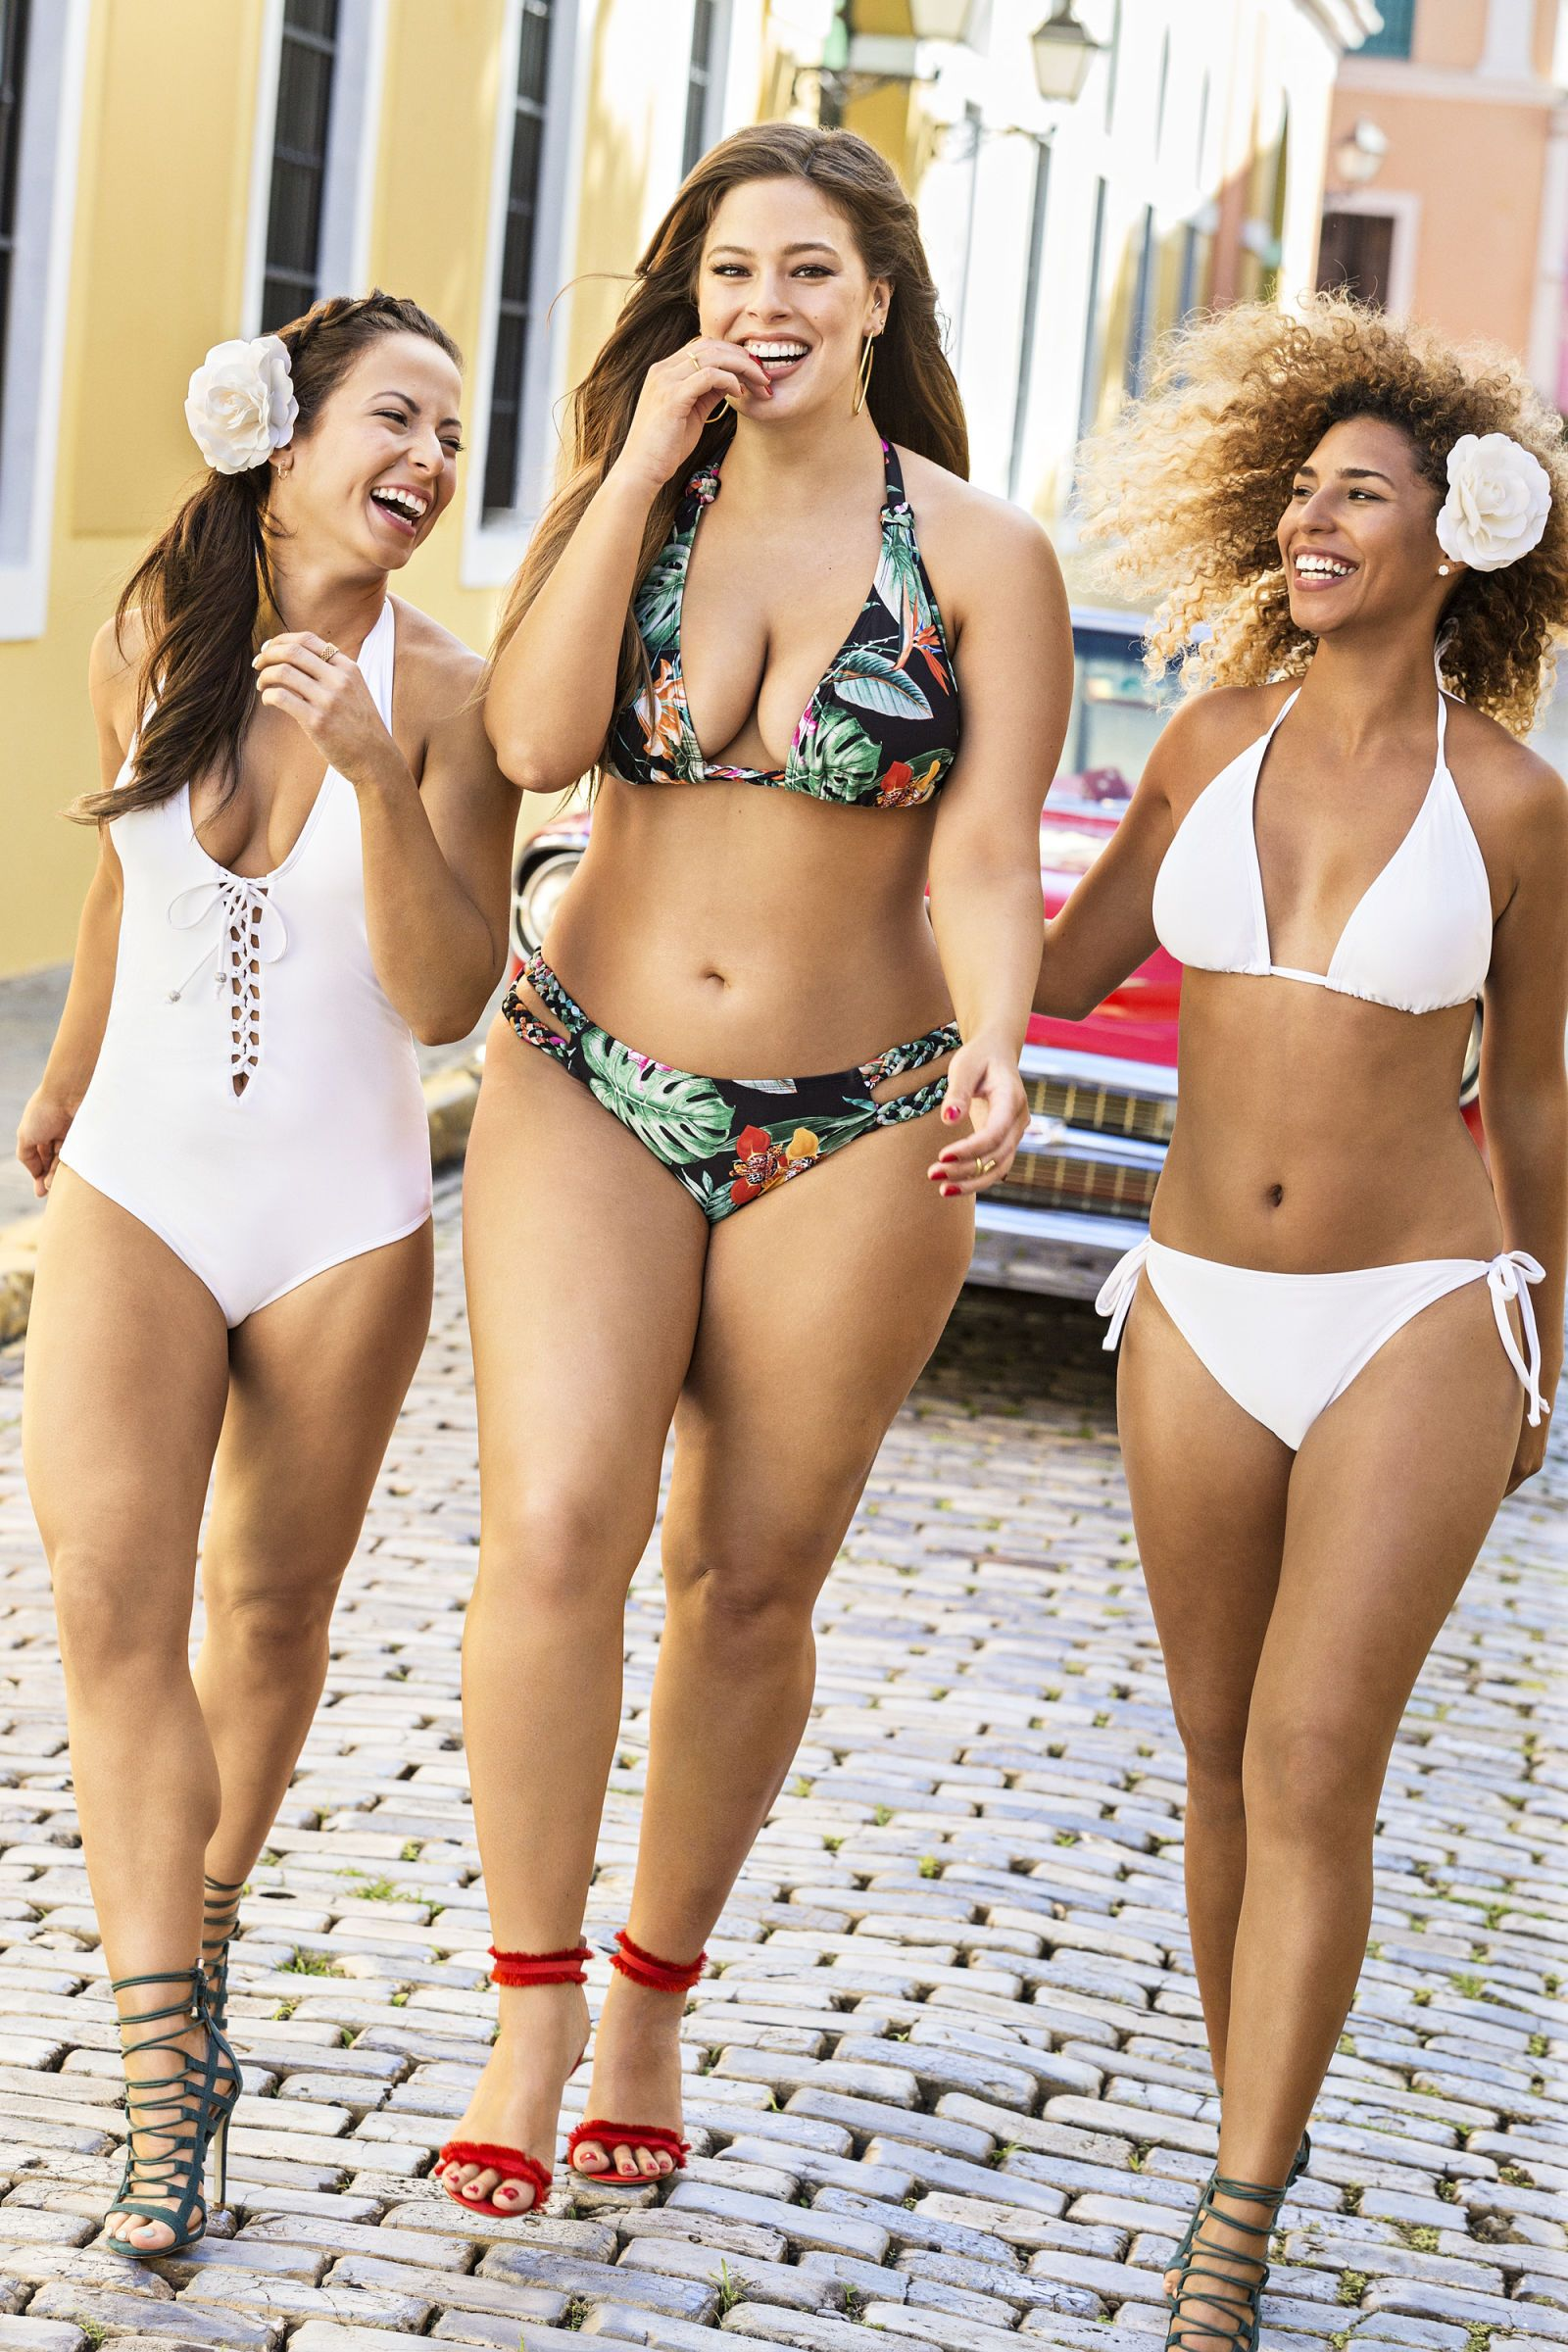 1ec5469ff62 Ashley Graham Recruits Regular Women of All Ages for Her New Swimwear  Campaign - ELLE.com